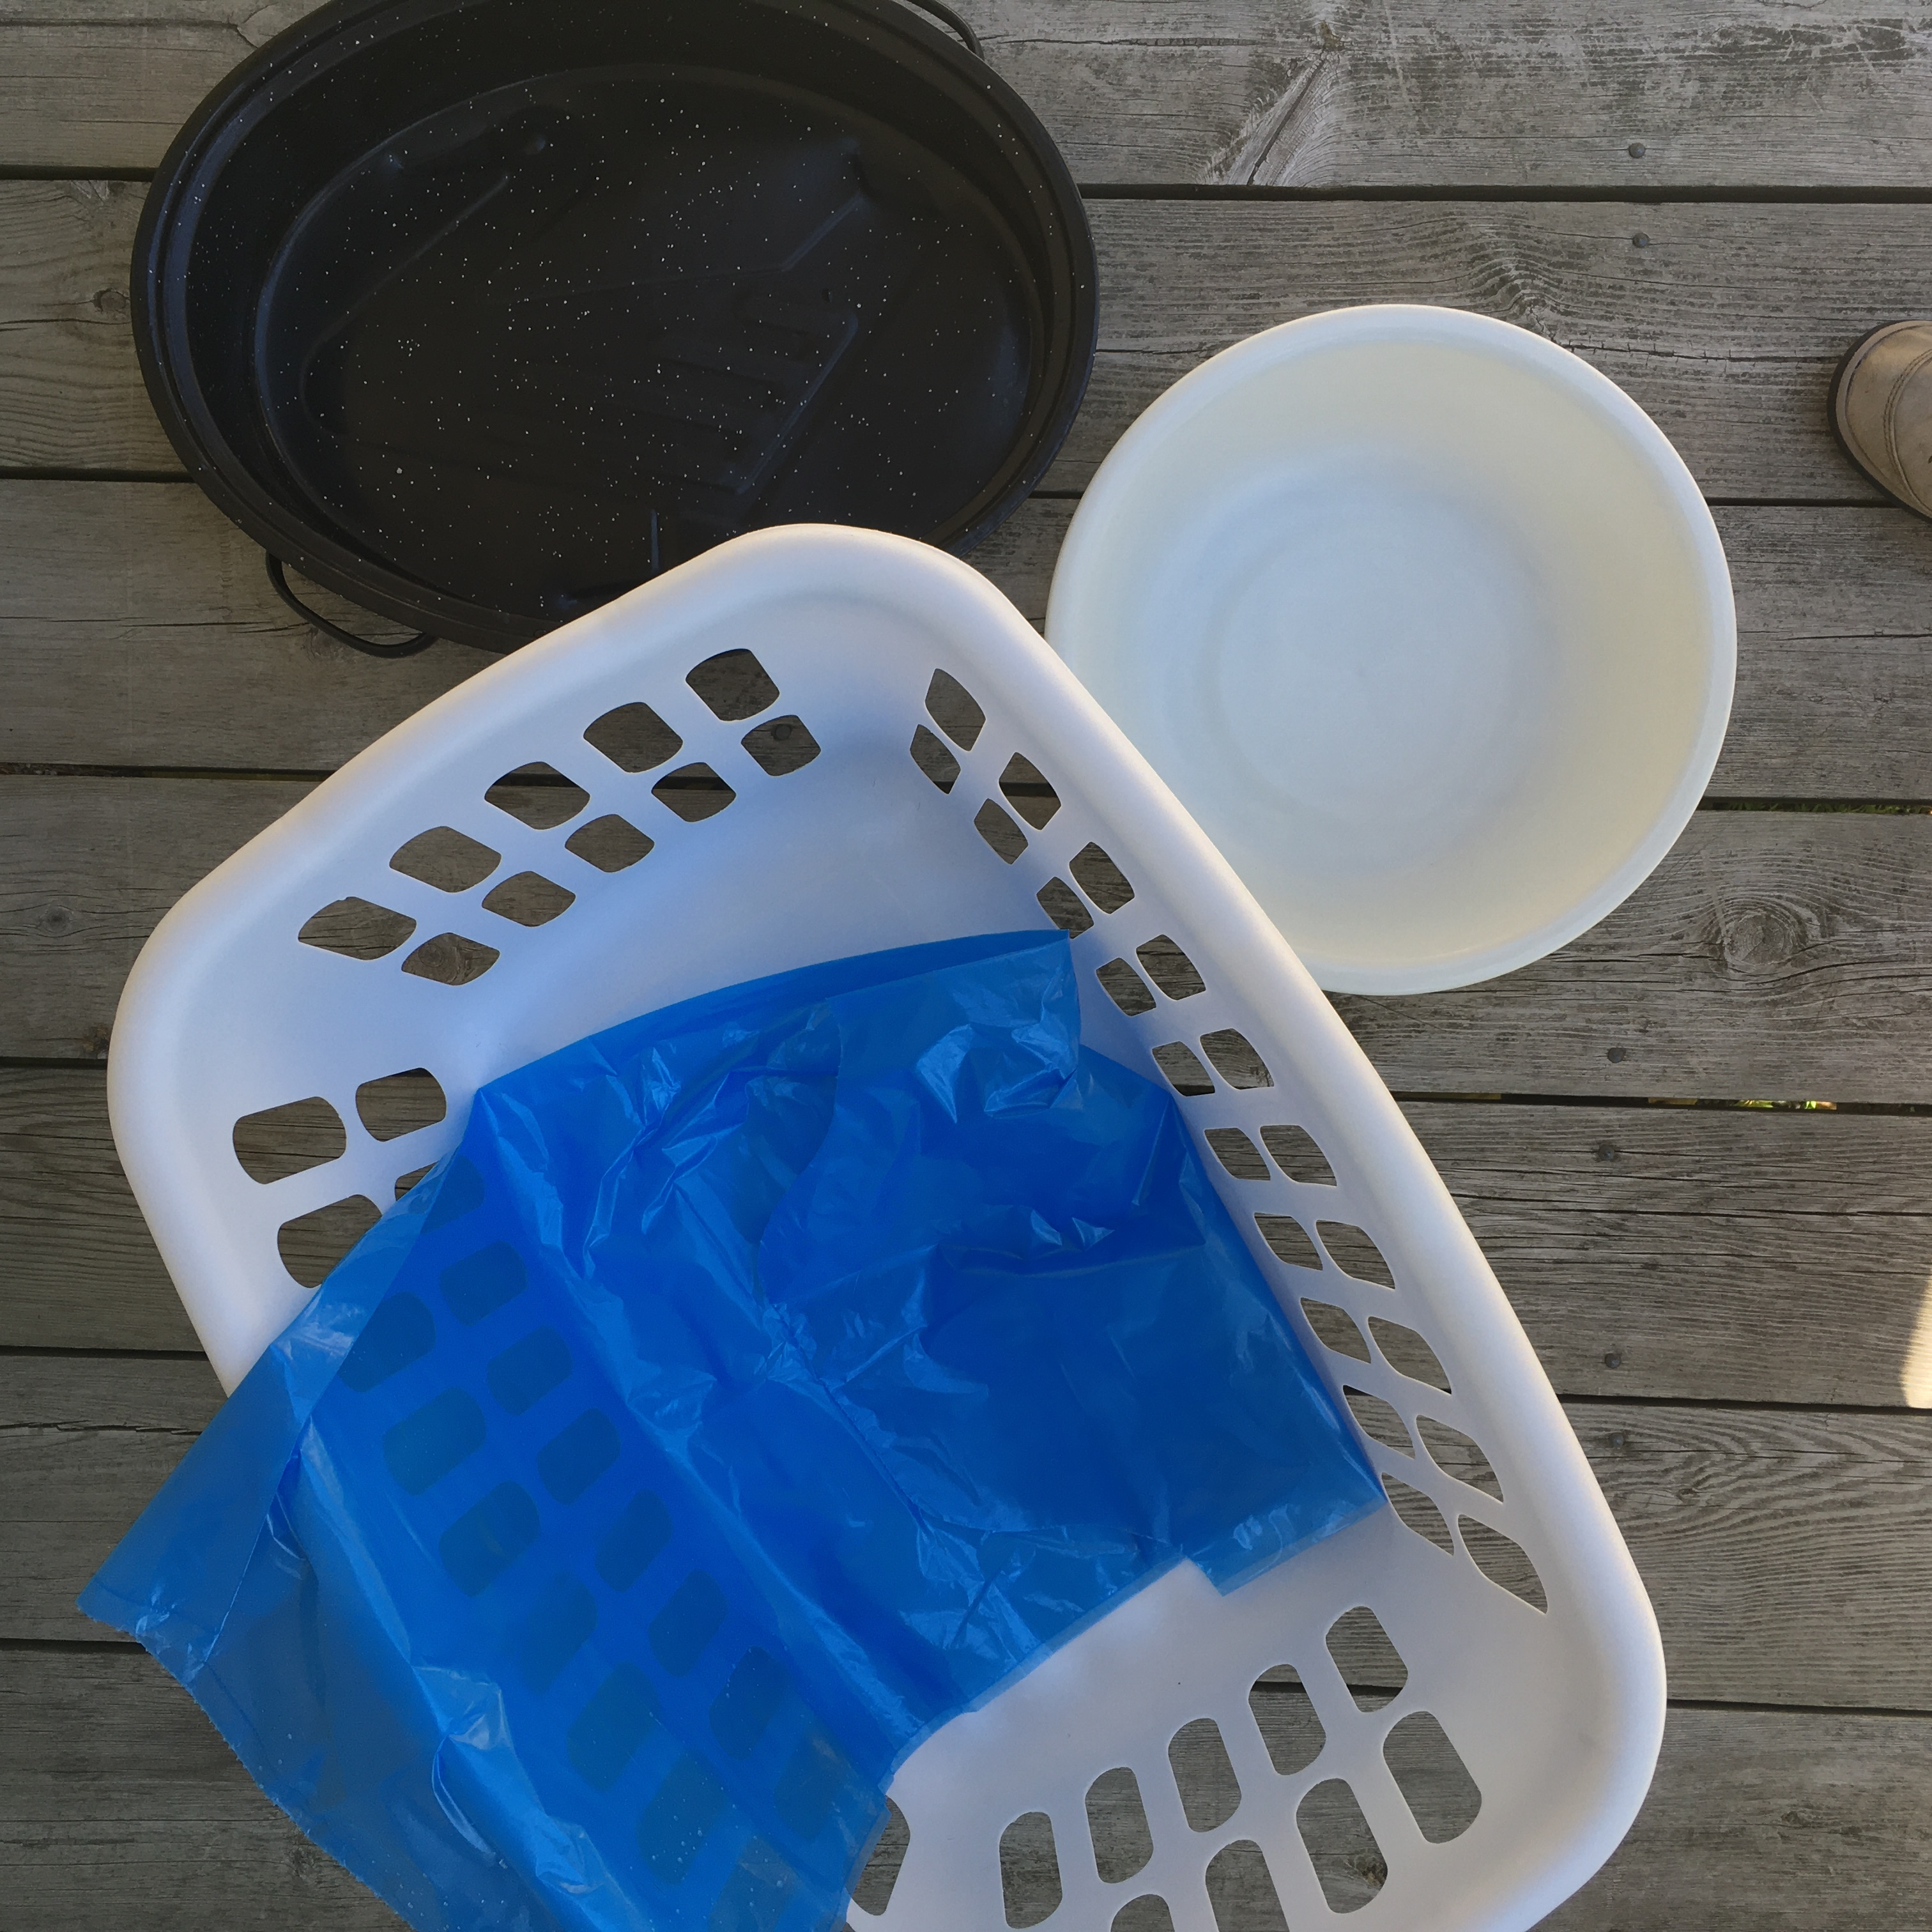 laundry basket, roasting pan, bucket, and blue bag